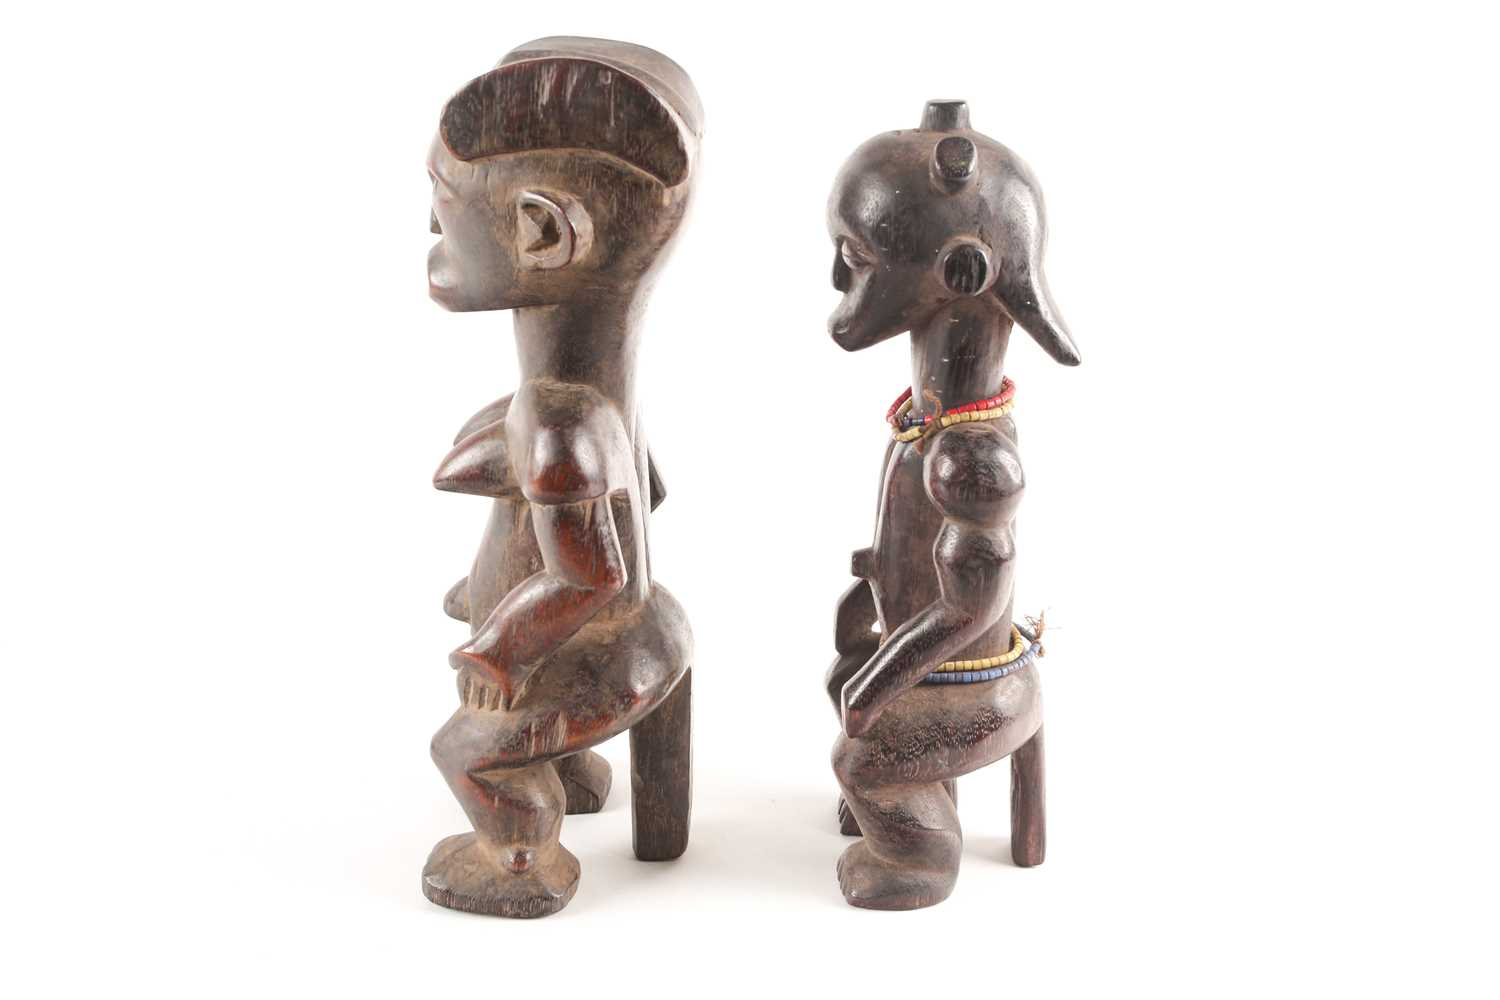 A Fang seated male figure, Gabon, with knotted hair swept out at the rear, seated with his hands - Image 2 of 6